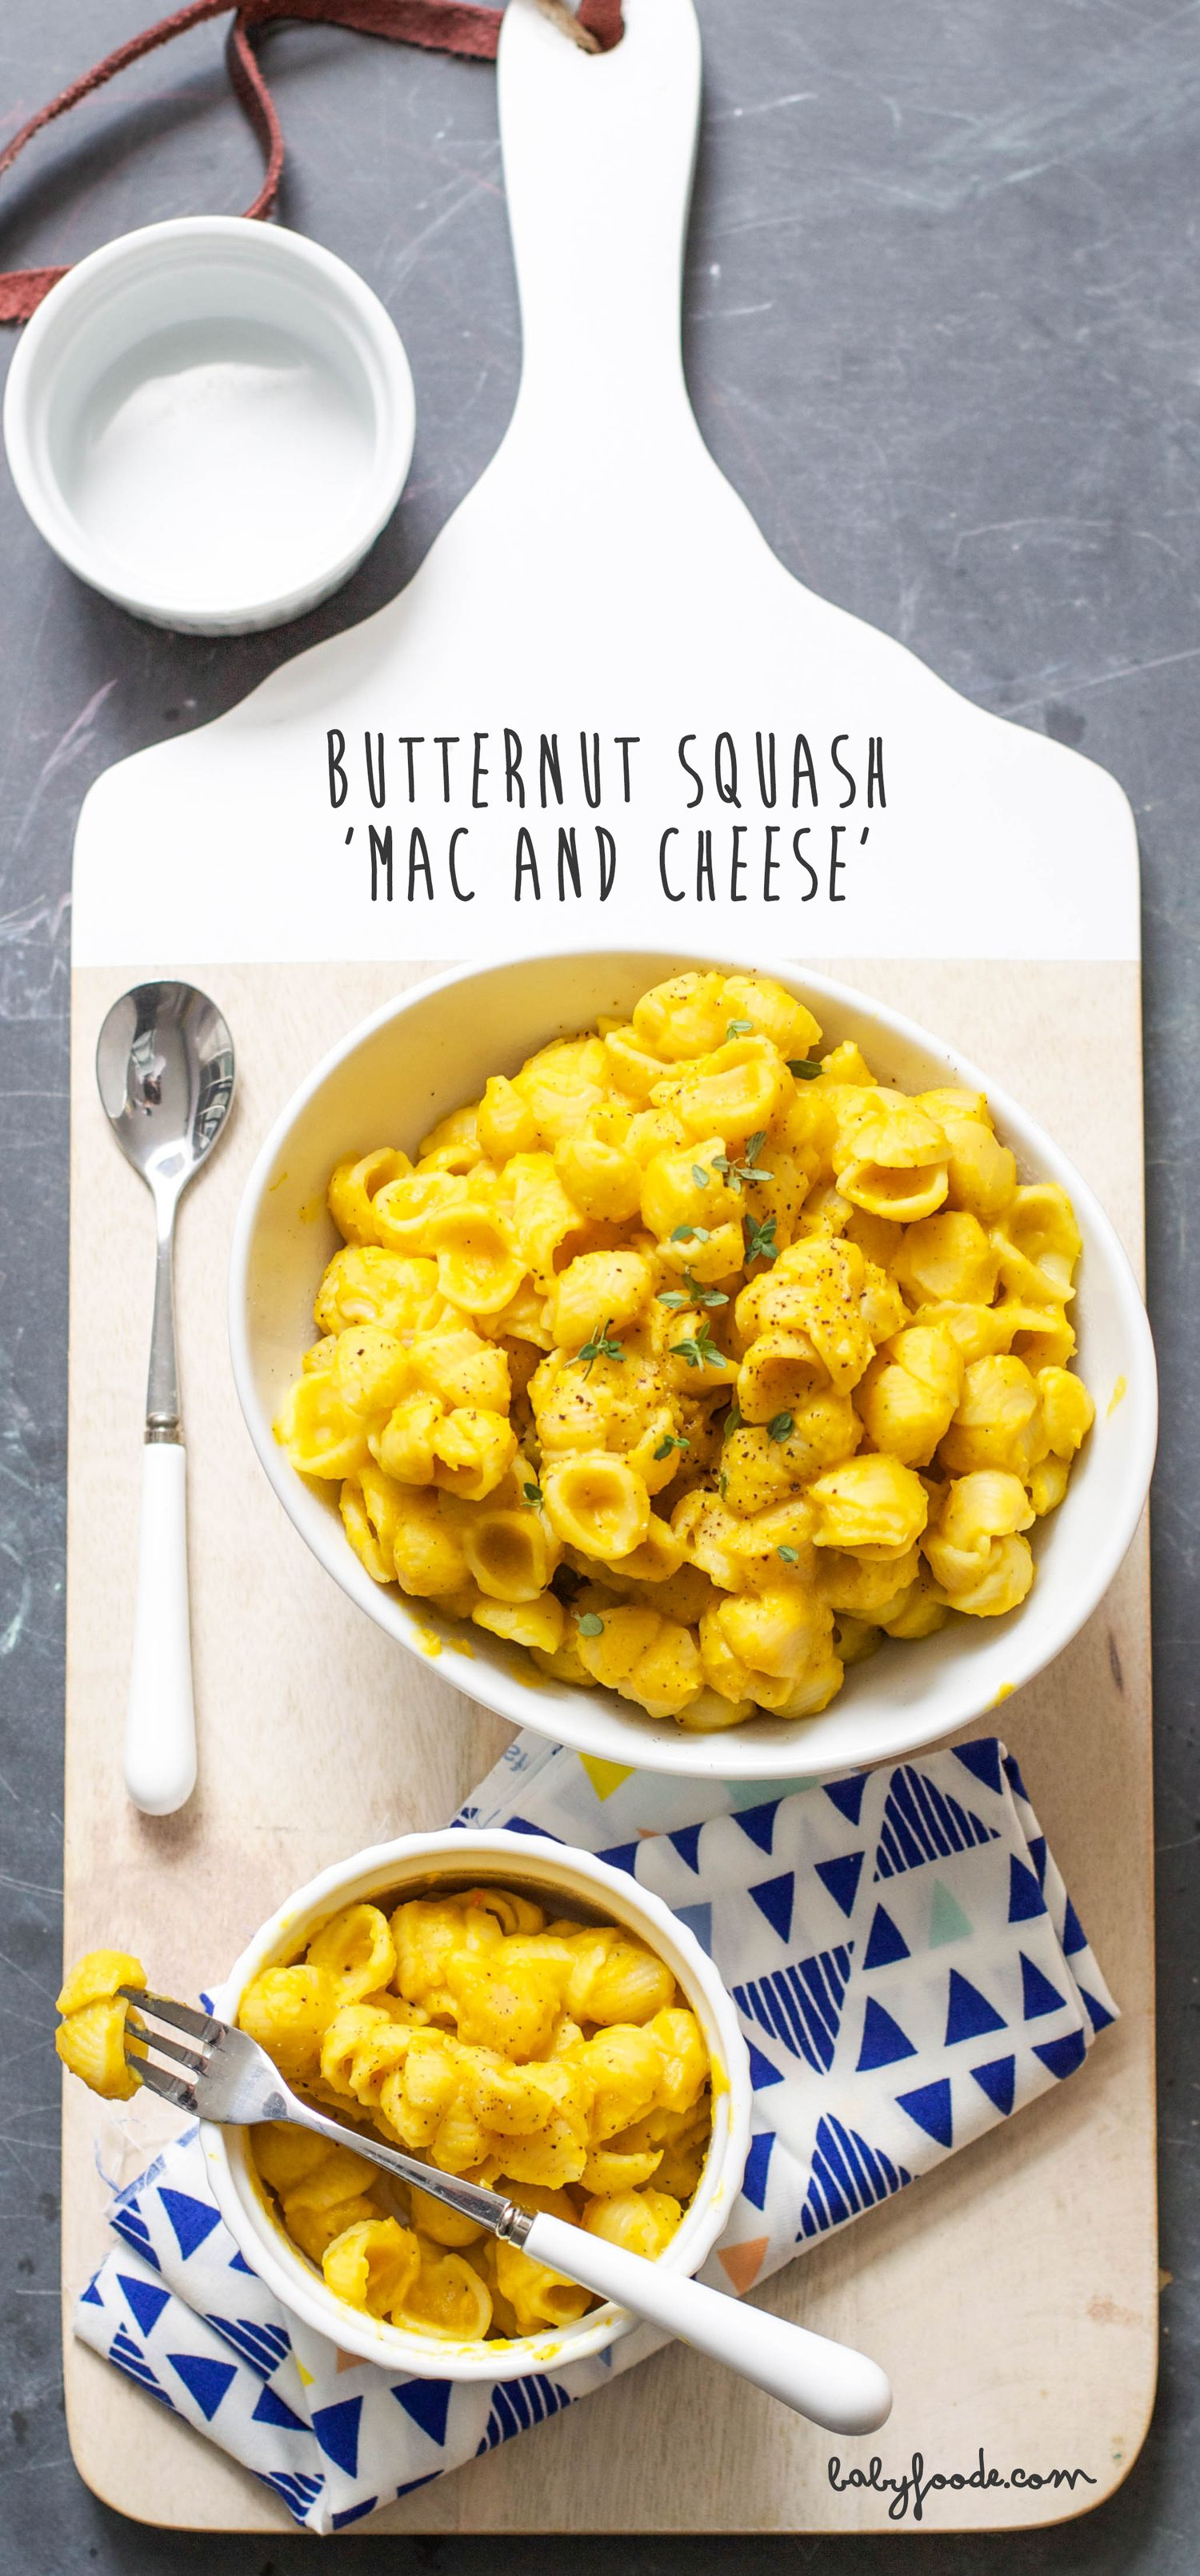 Butternut squash mac and cheese for toddler baby food recipes butternut squash mac and cheese for toddler healthy food for toddlerstoddler recipes forumfinder Gallery